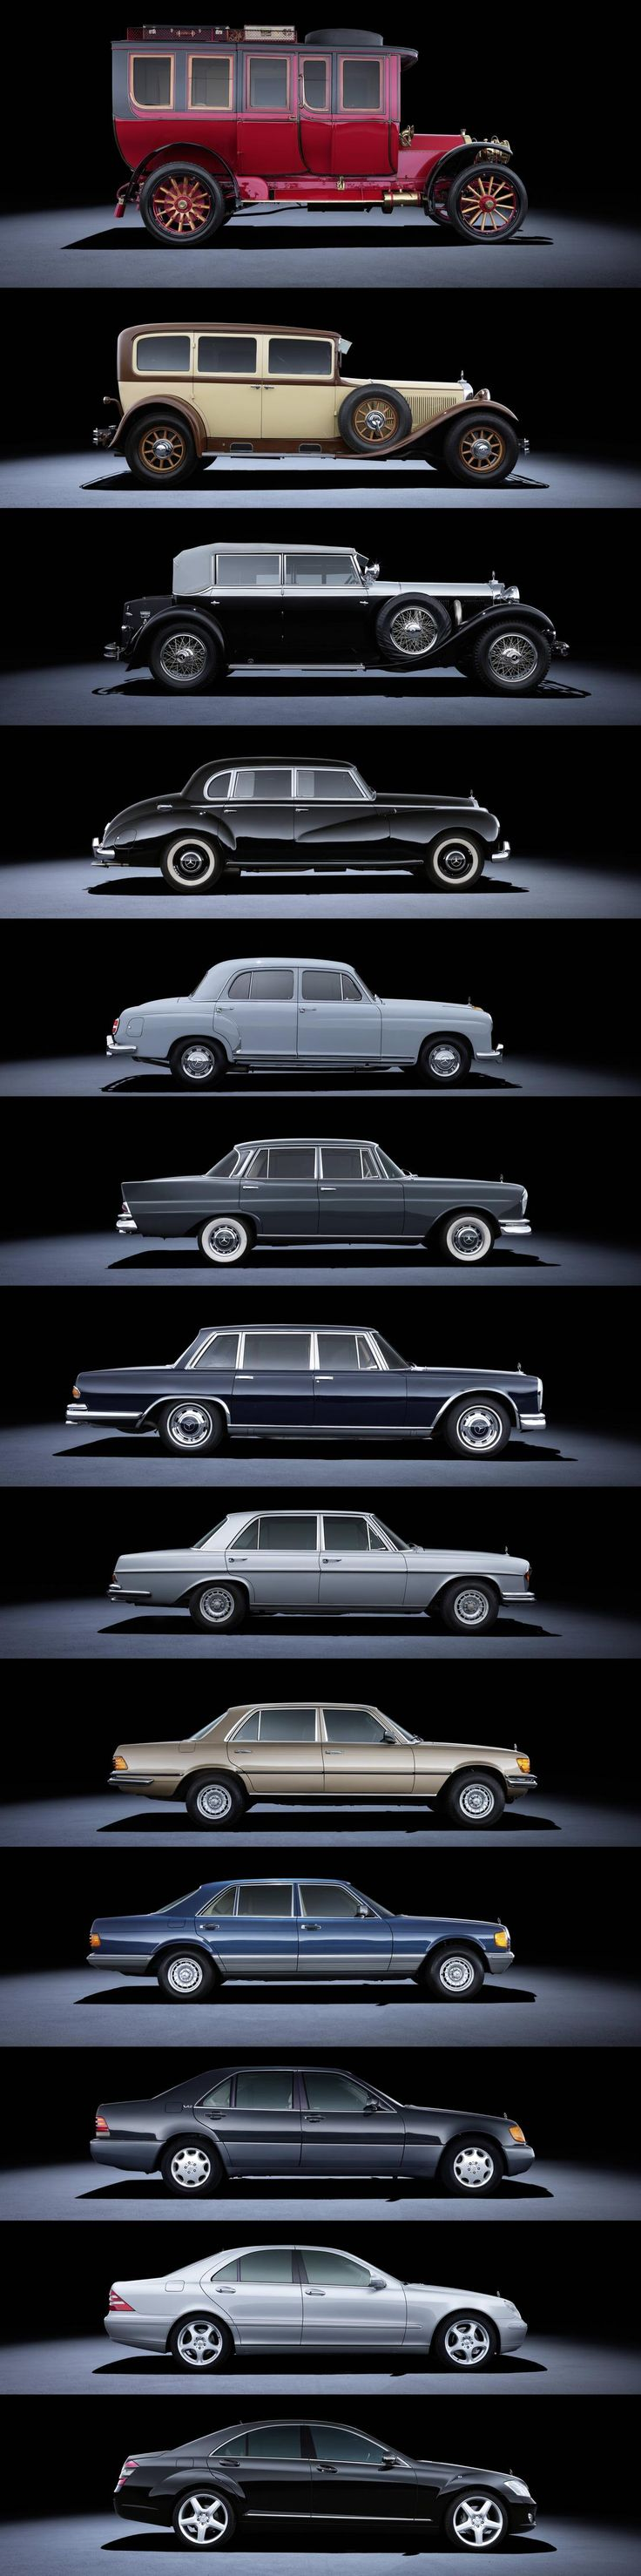 Evolution of the Mercedes S-Class